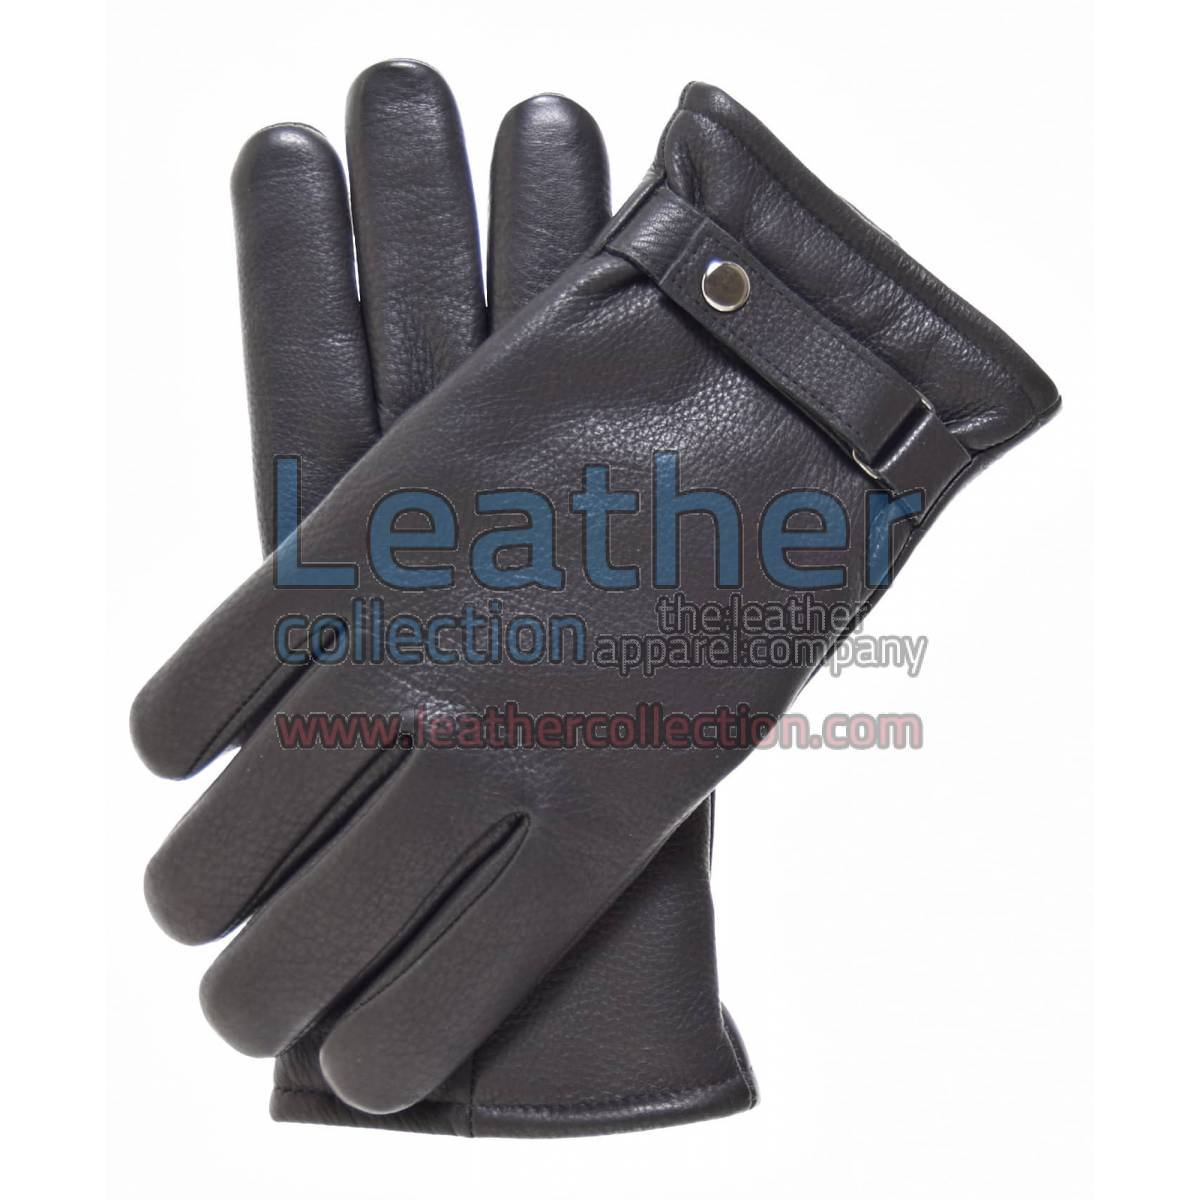 Tough Leather Gloves Brown With Thinsulate Lining